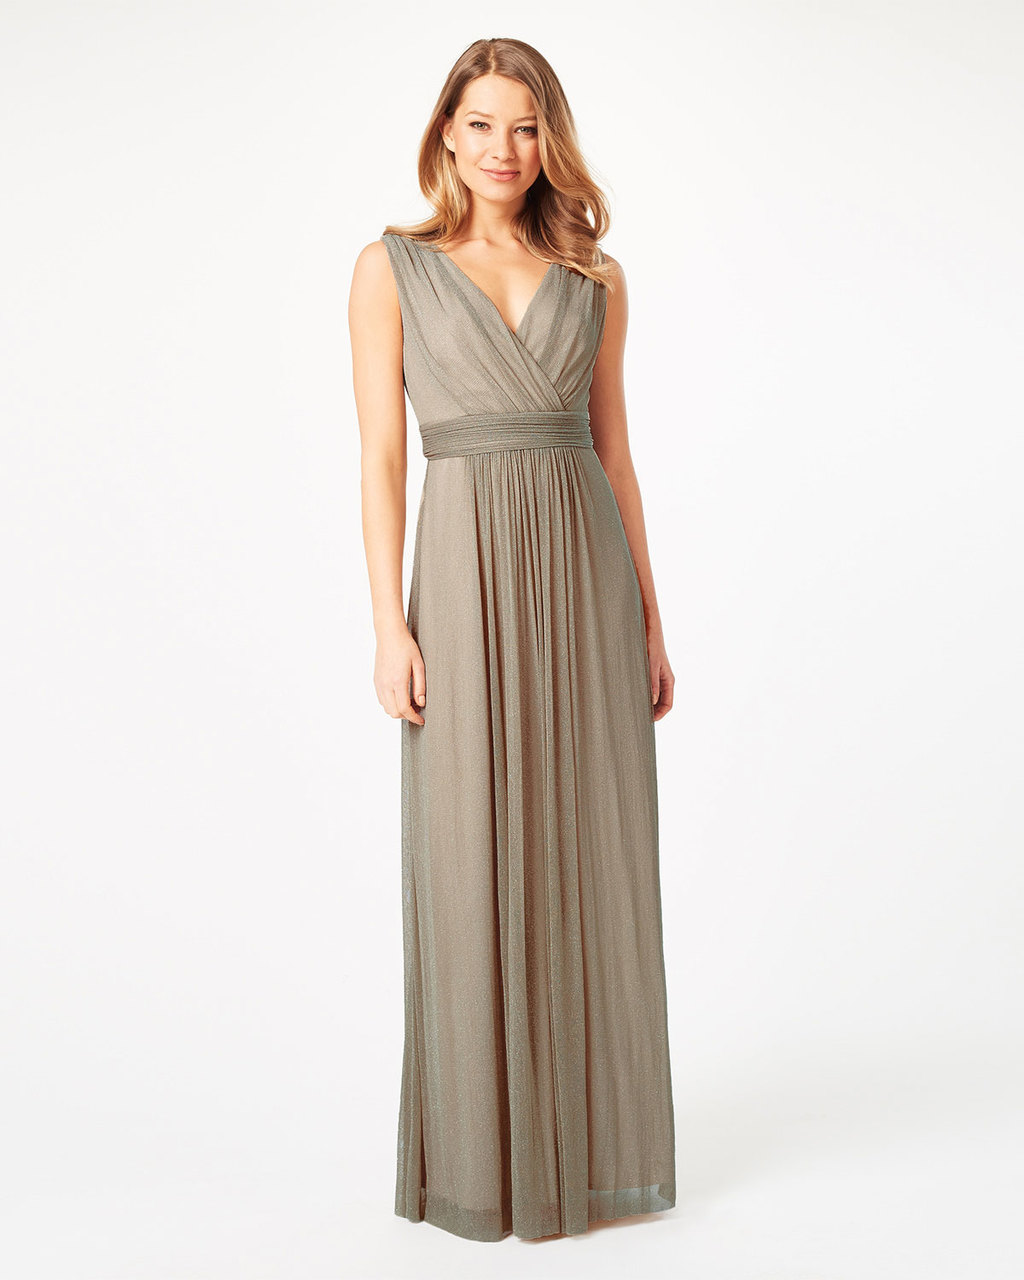 Millicent Maxi Dress - neckline: v-neck; pattern: plain; sleeve style: sleeveless; style: maxi dress; waist detail: belted waist/tie at waist/drawstring; predominant colour: taupe; length: floor length; fit: body skimming; fibres: nylon - mix; occasions: occasion; sleeve length: sleeveless; pattern type: fabric; texture group: other - light to midweight; season: s/s 2016; wardrobe: event